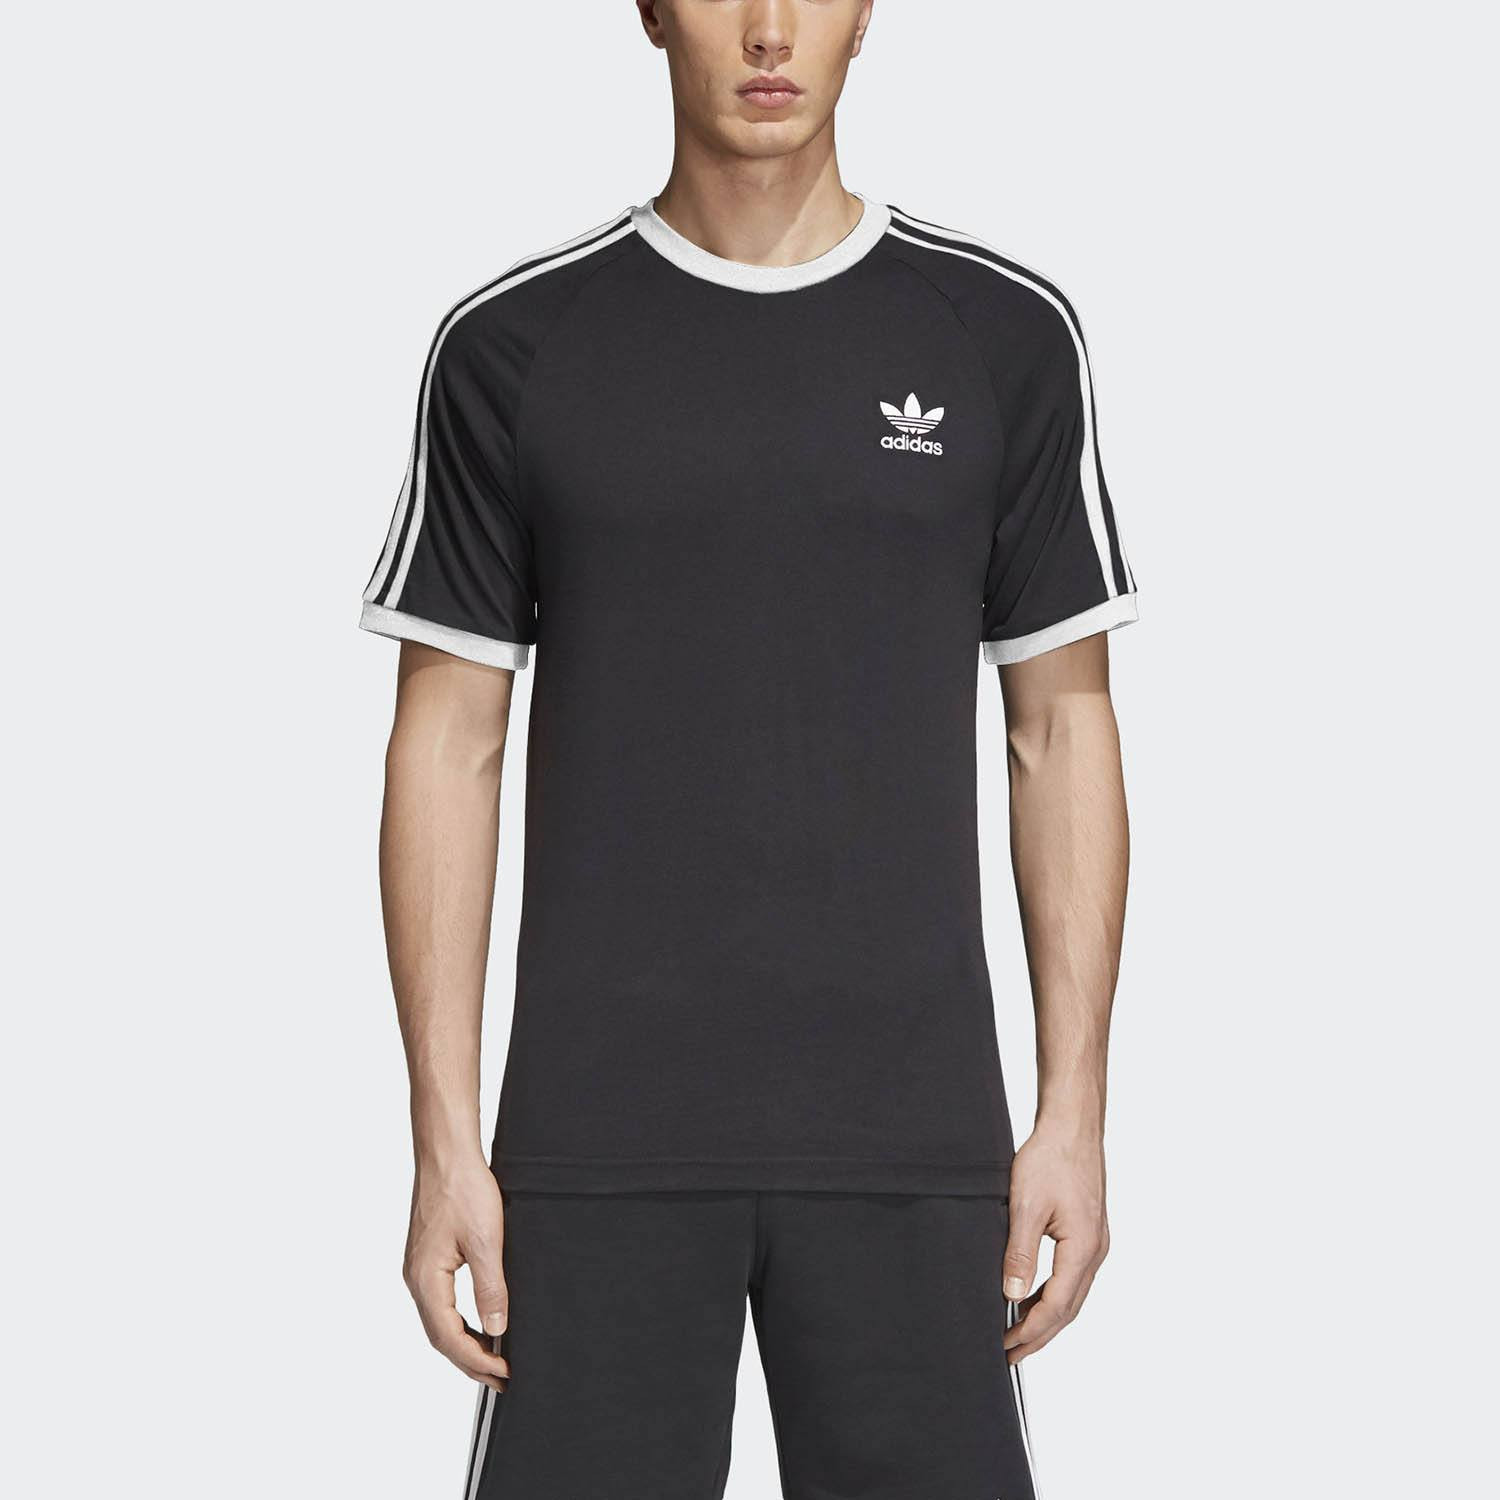 adidas Original 3-Stripes Men's Tee (9000001710_1469)